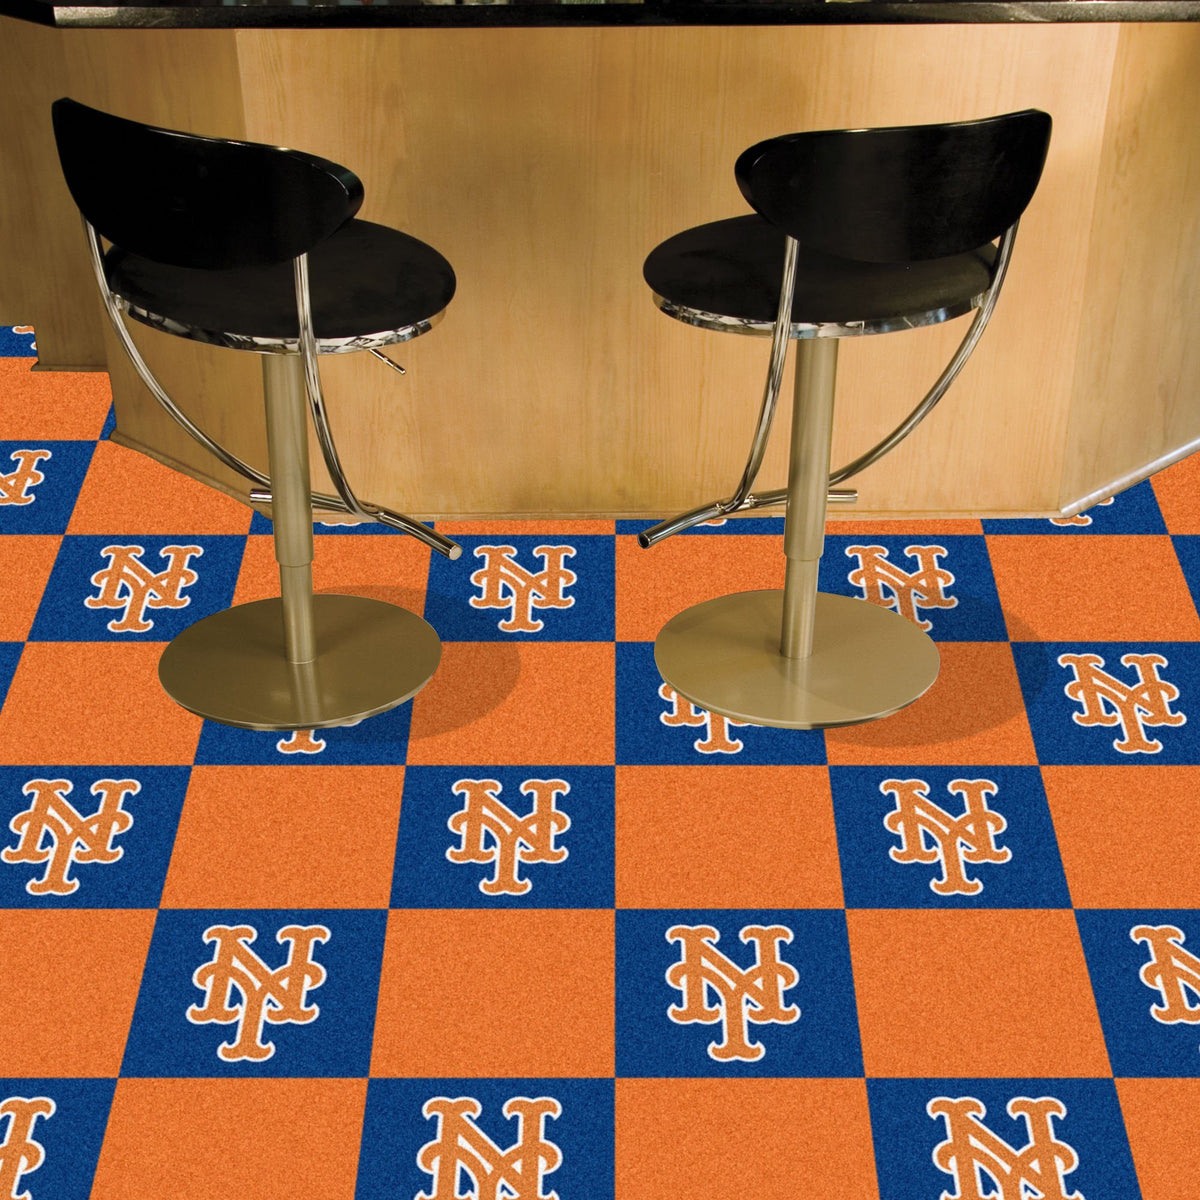 MLB - Team Carpet Tiles MLB Mats, Carpet Tile Flooring, Team Carpet Tiles, MLB, Home Fan Mats New York Mets